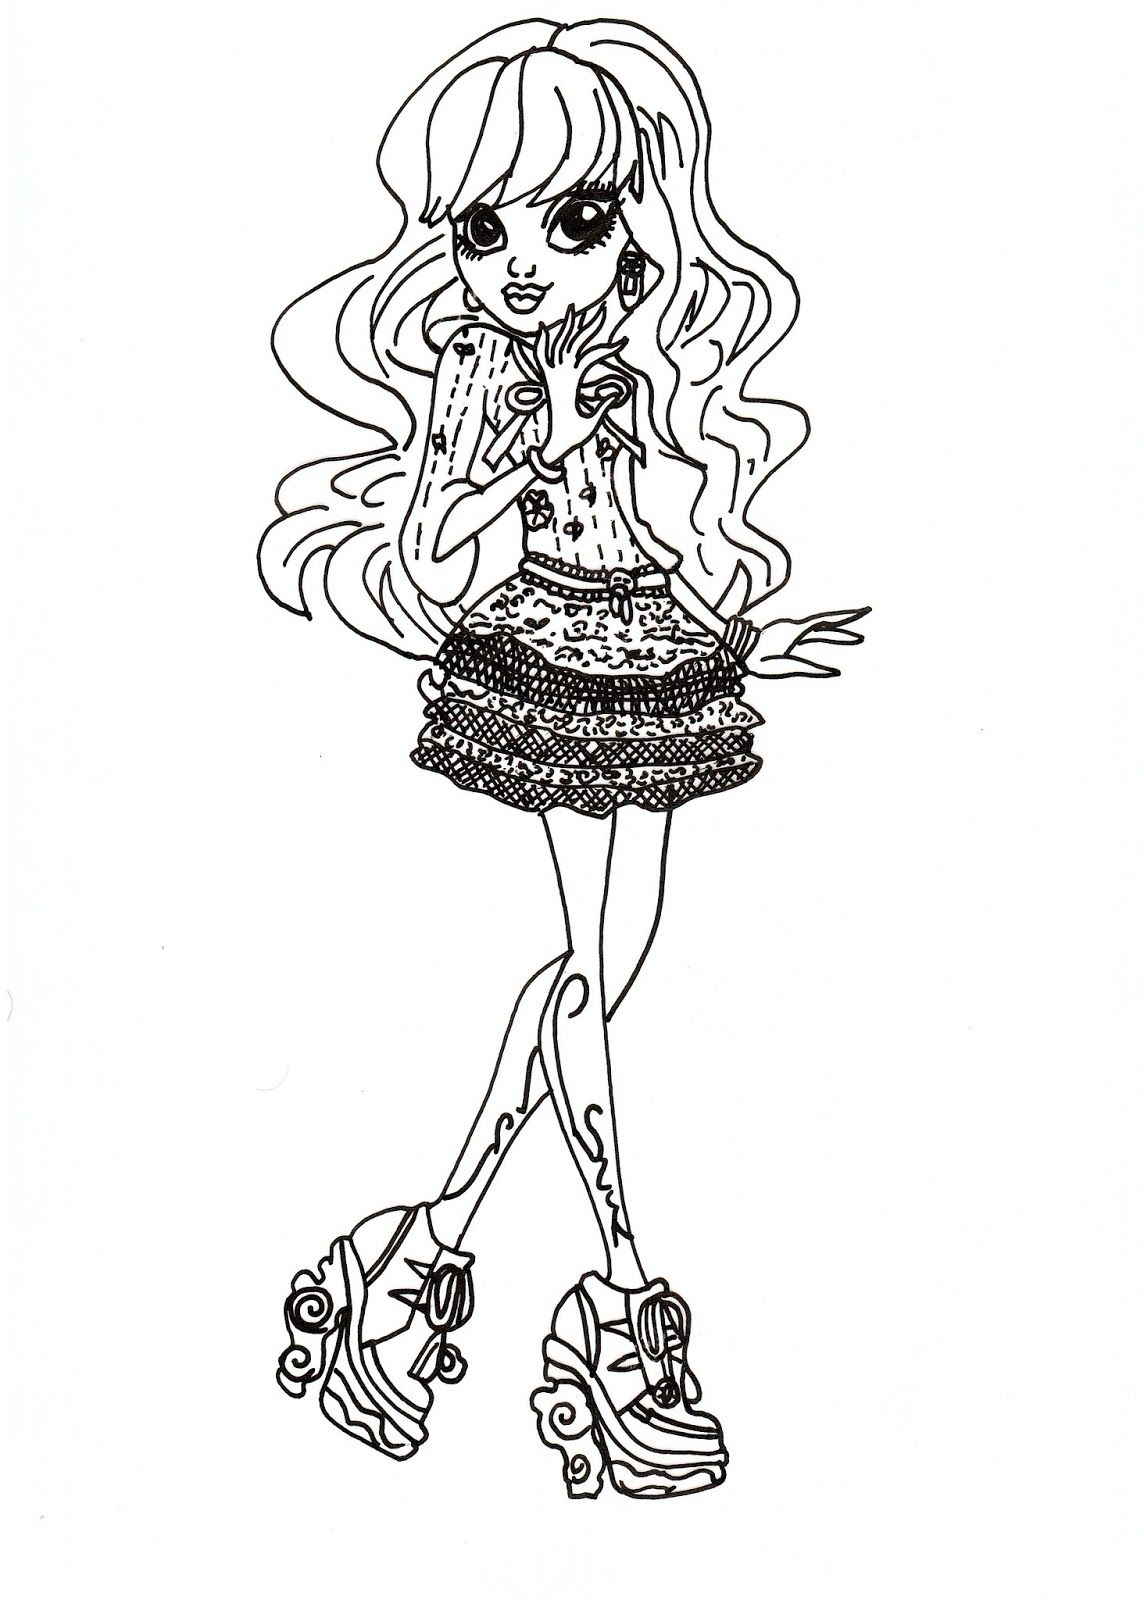 Free Printable Monster High Coloring Pages For Kids Monster Coloring Pages Cartoon Coloring Pages Dragon Coloring Page